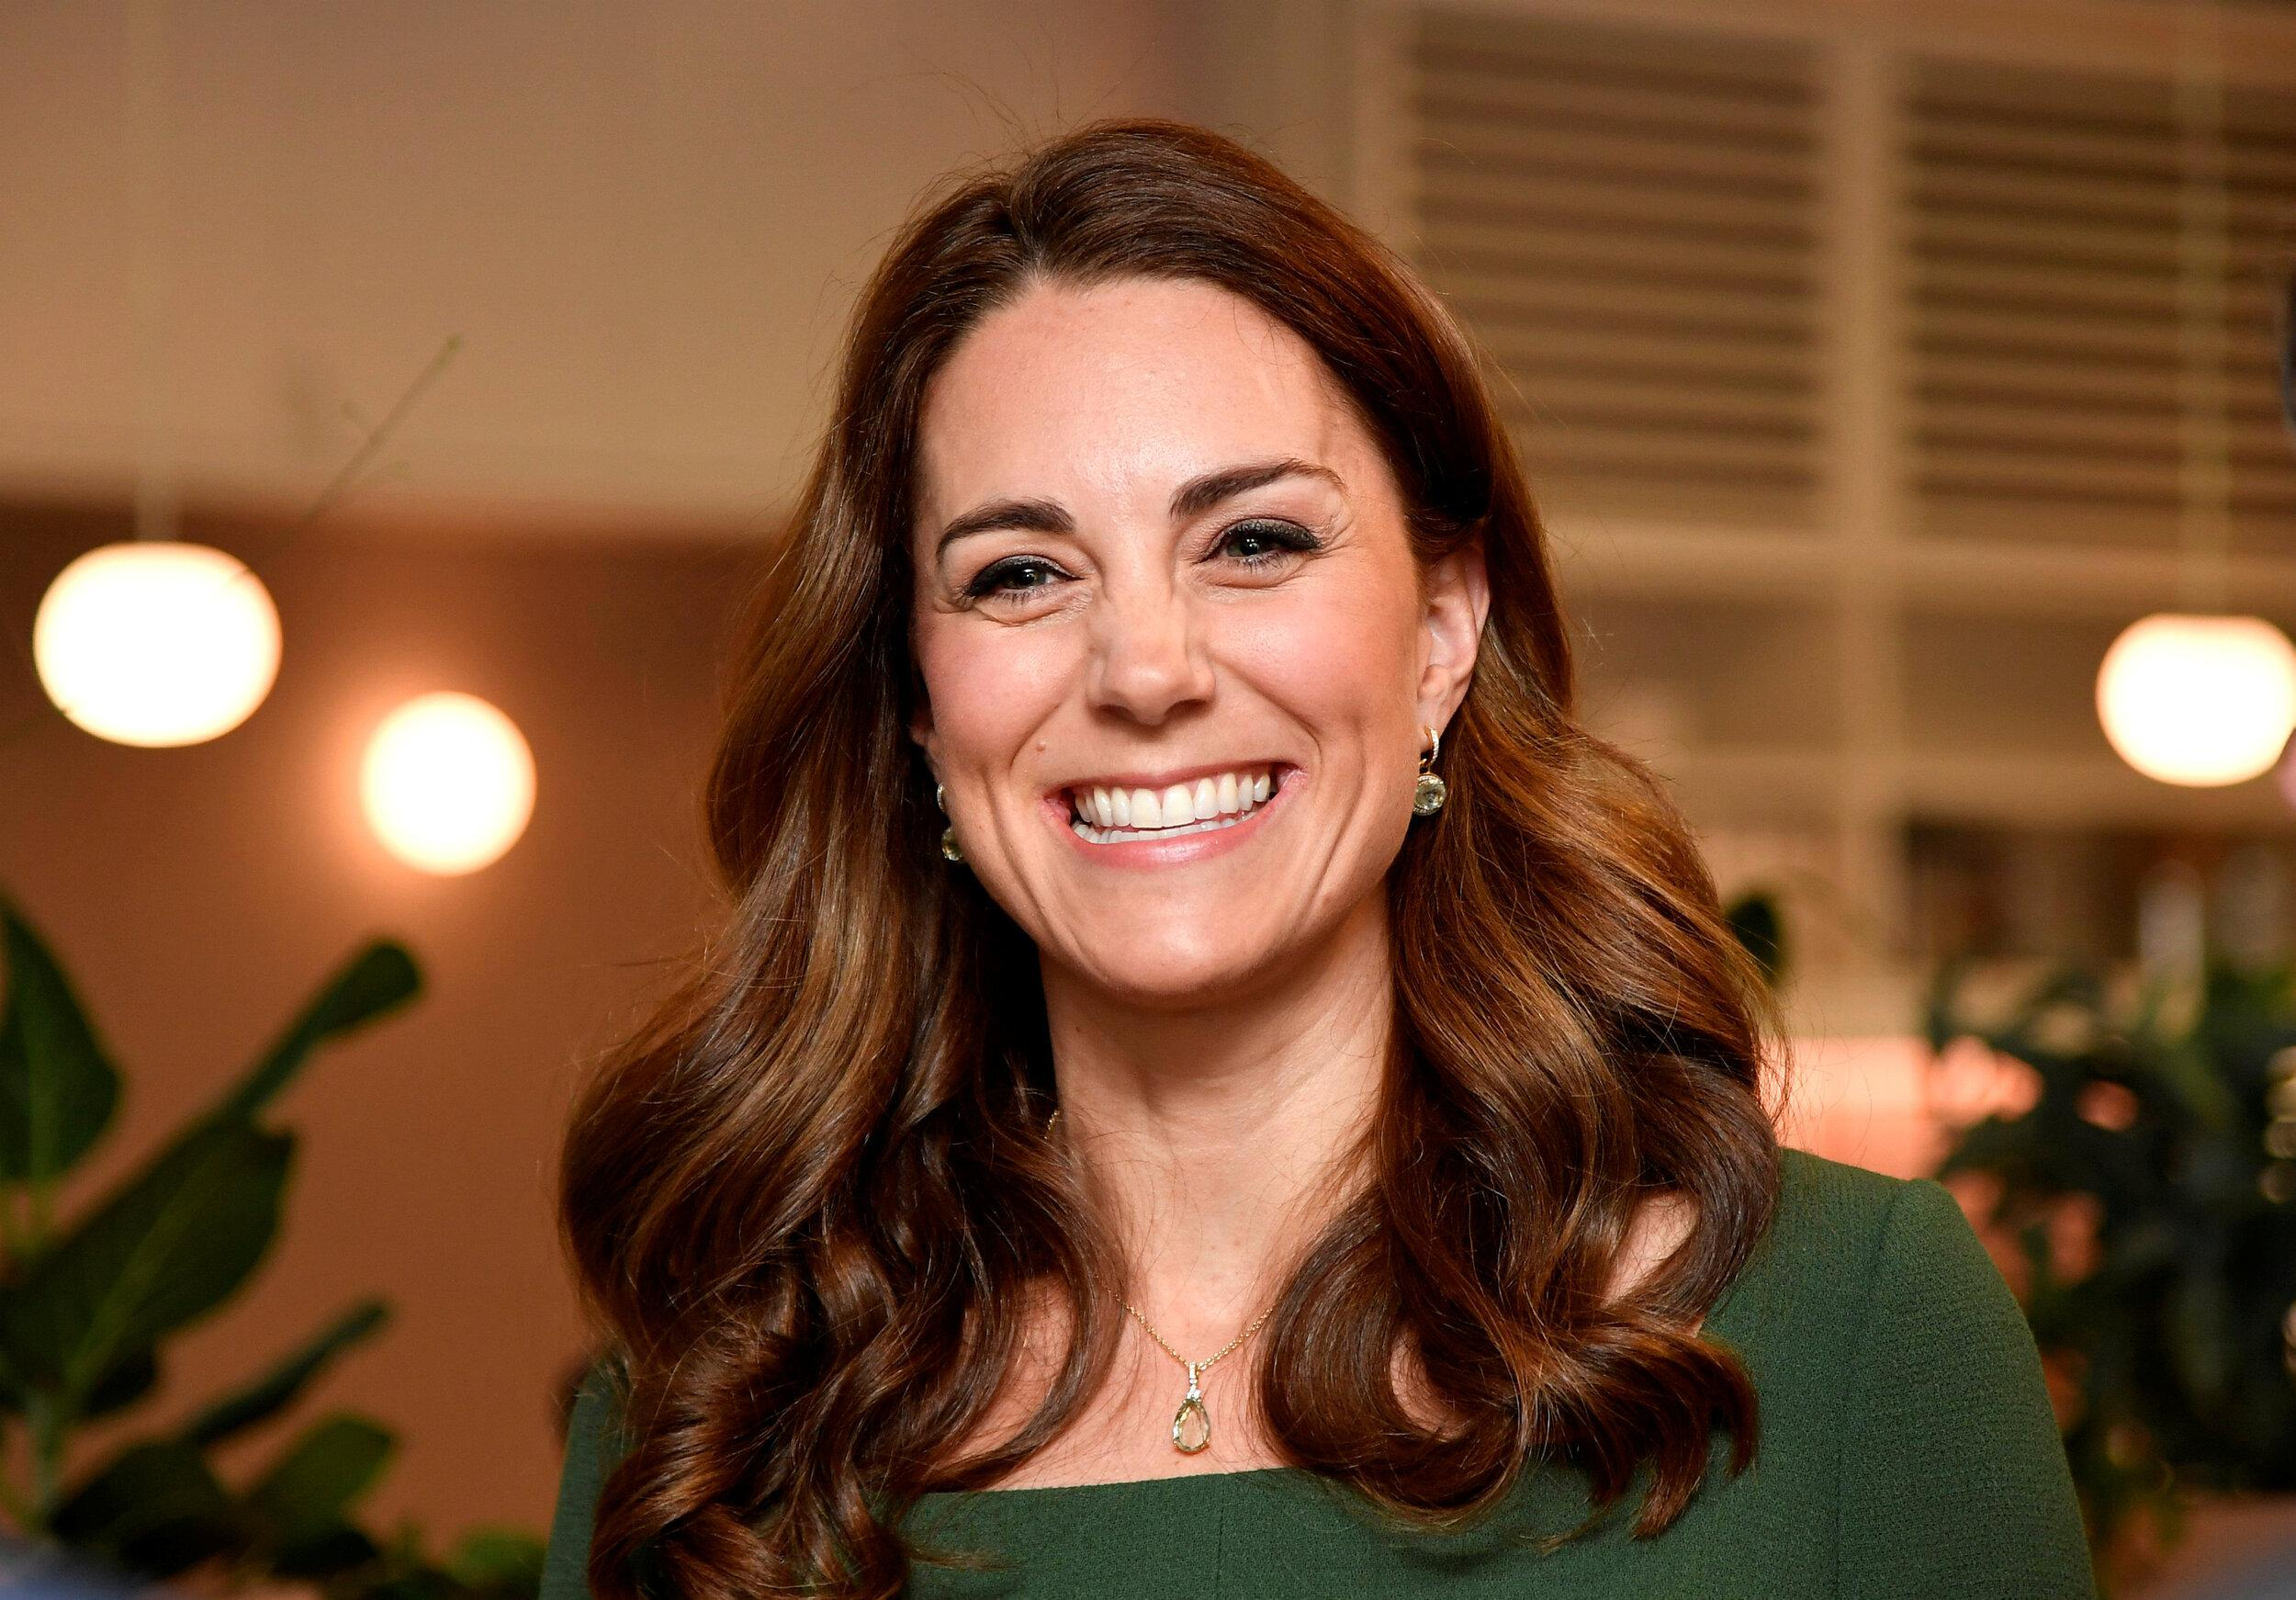 Britain's Catherine, Duchess of Cambridge arrives to visit the Anna Freud National Centre for Children and Families in London on May 1, 2019. (Photo by TOBY MELVILLE / POOL / AFP)        (Photo credit should read TOBY MELVILLE/AFP/Getty Images)